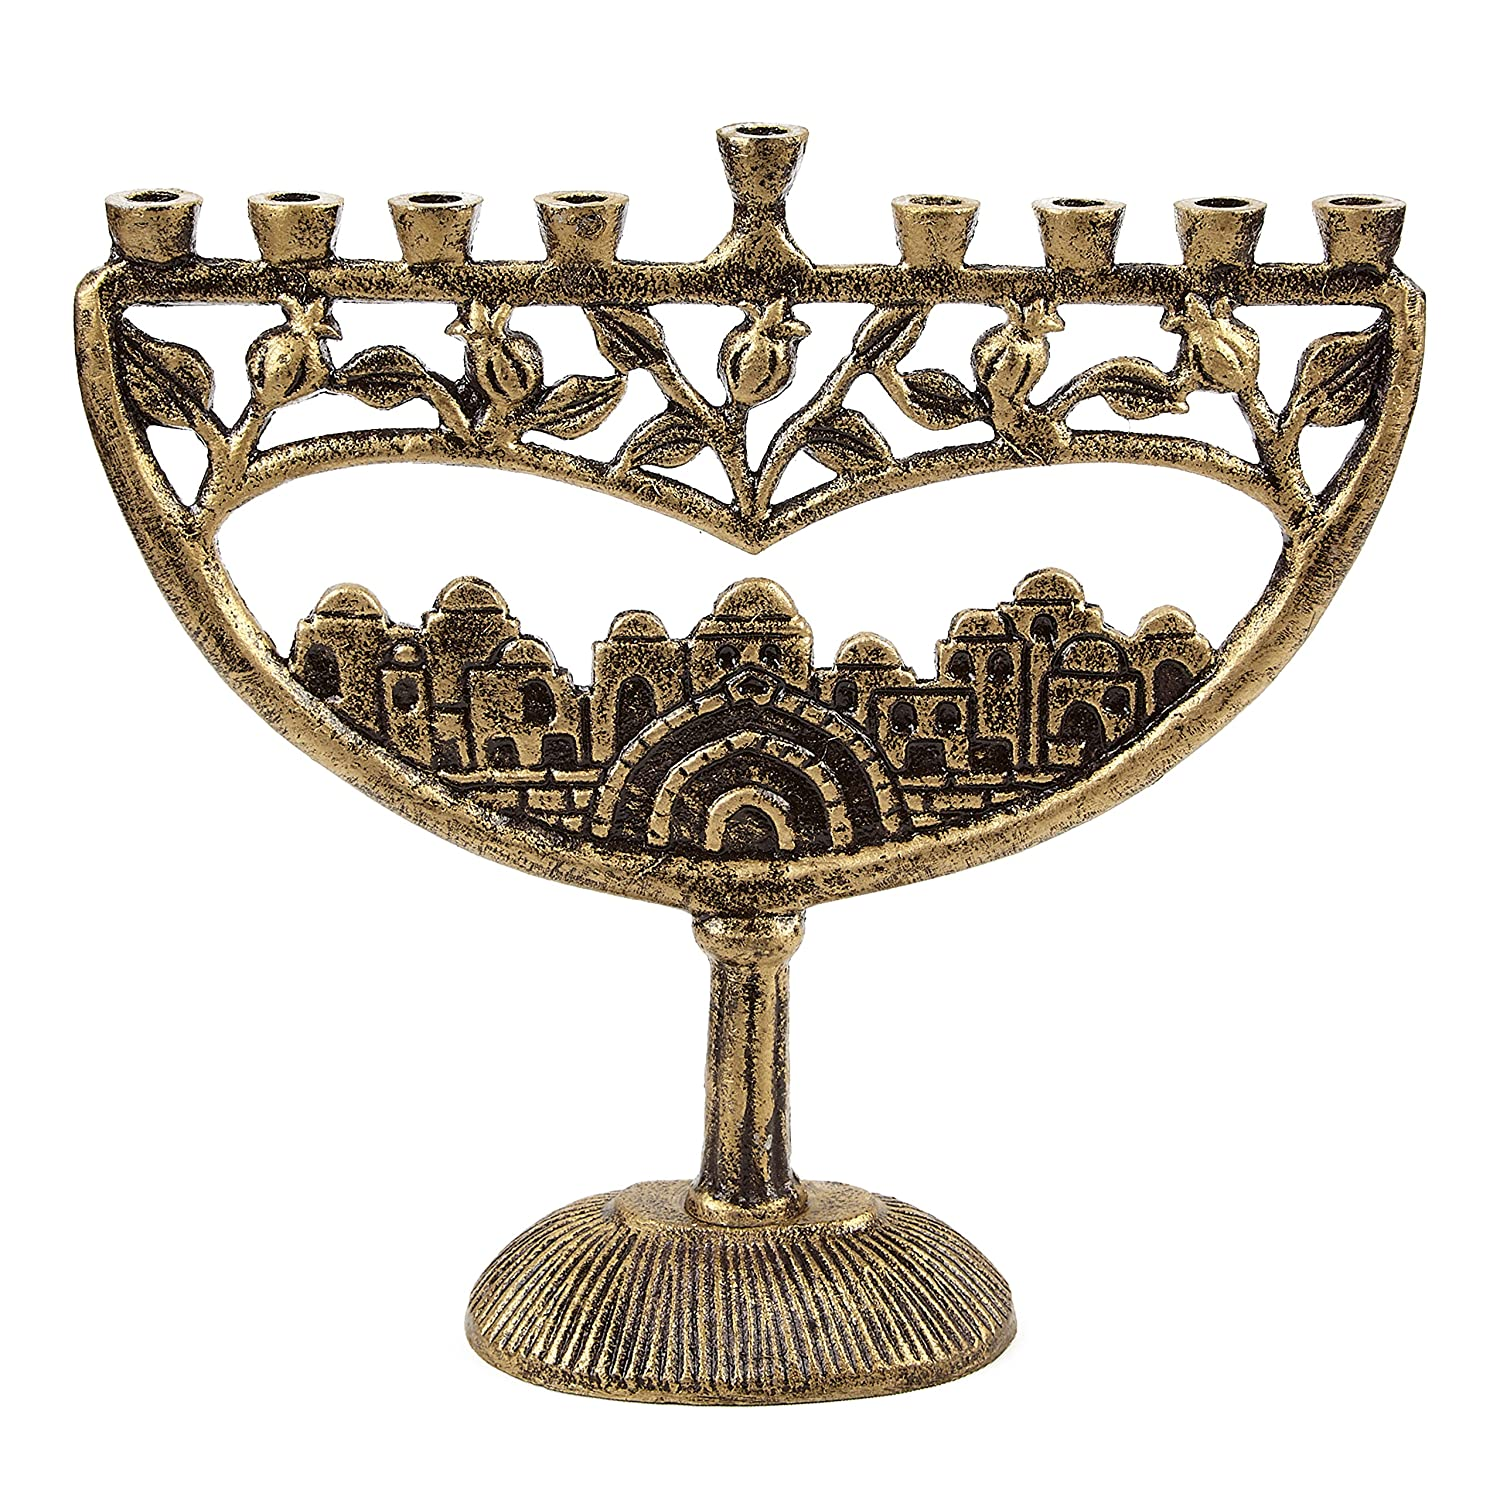 Ner Mitzvah Vintage Aluminum Candle Menorah - Fits All Standard Chanukah Candles - Ancient Jerusalem Design with Antique Gold Finish 30324